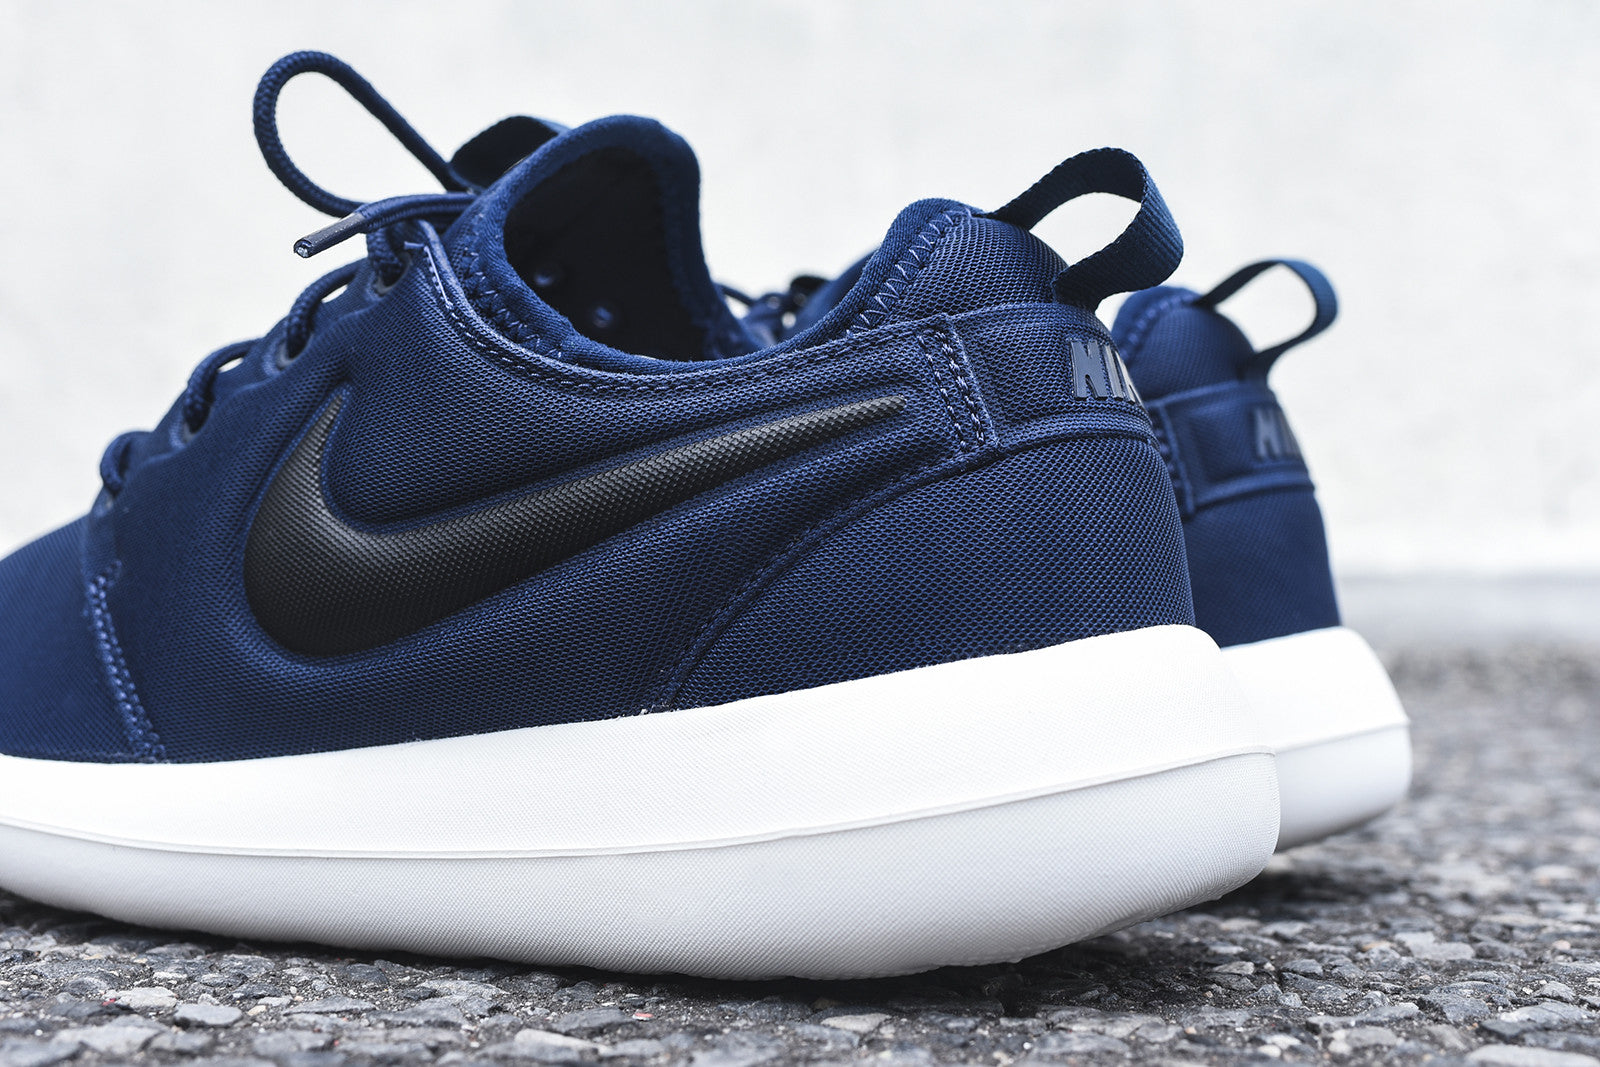 50% Off Nike roshe two midnight navy For Fall Ana's Place Apartments